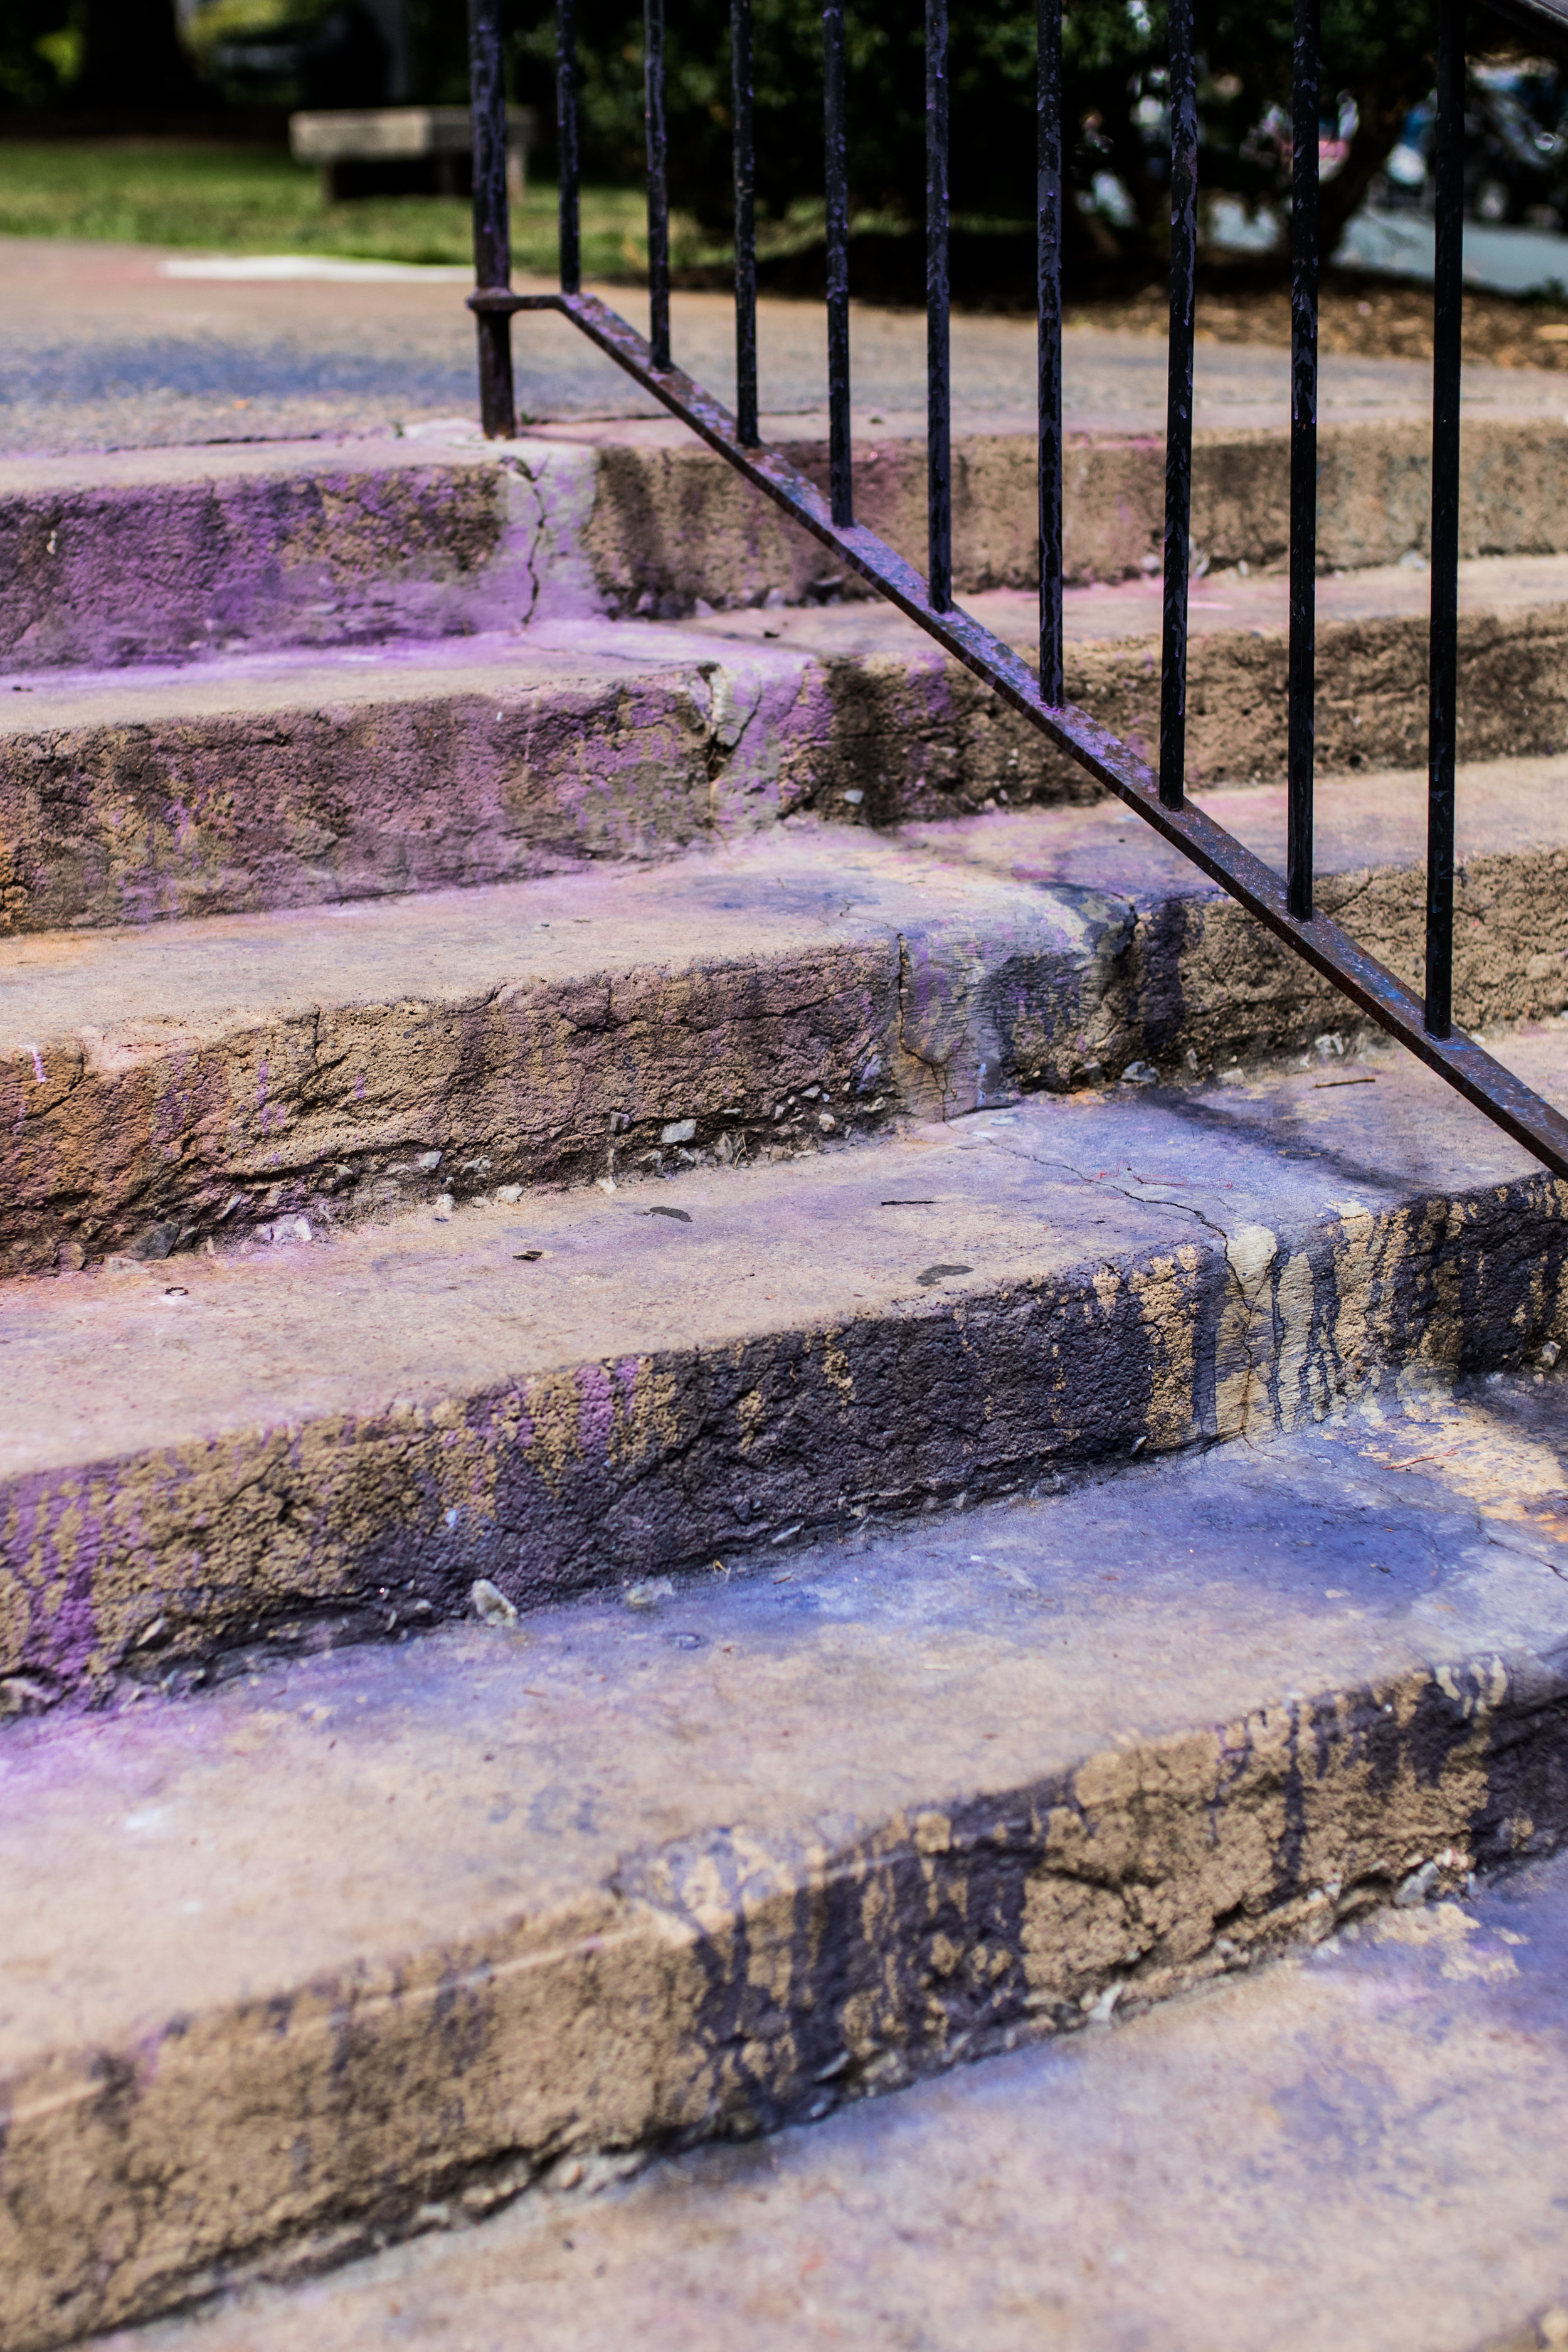 Steps leading to Emancipation Park - ironically covered in purple because of residue from smoke grenades.